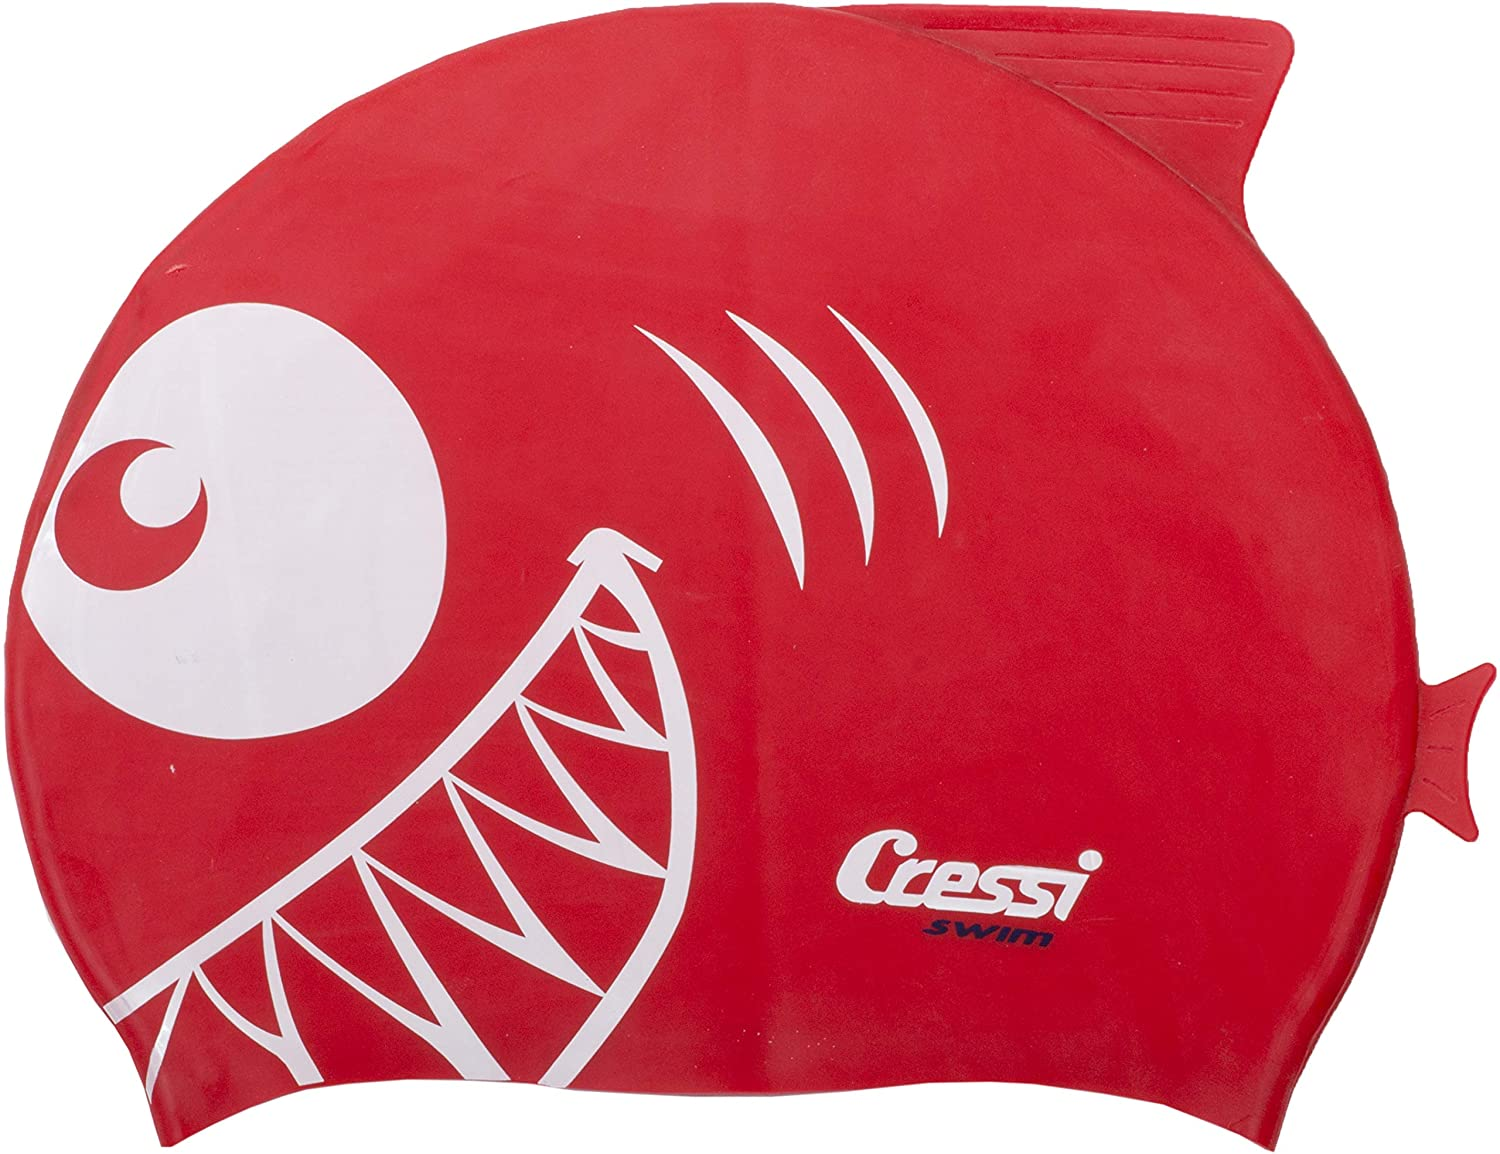 Cressi Shark, Silicone Swimming Cap For Kids